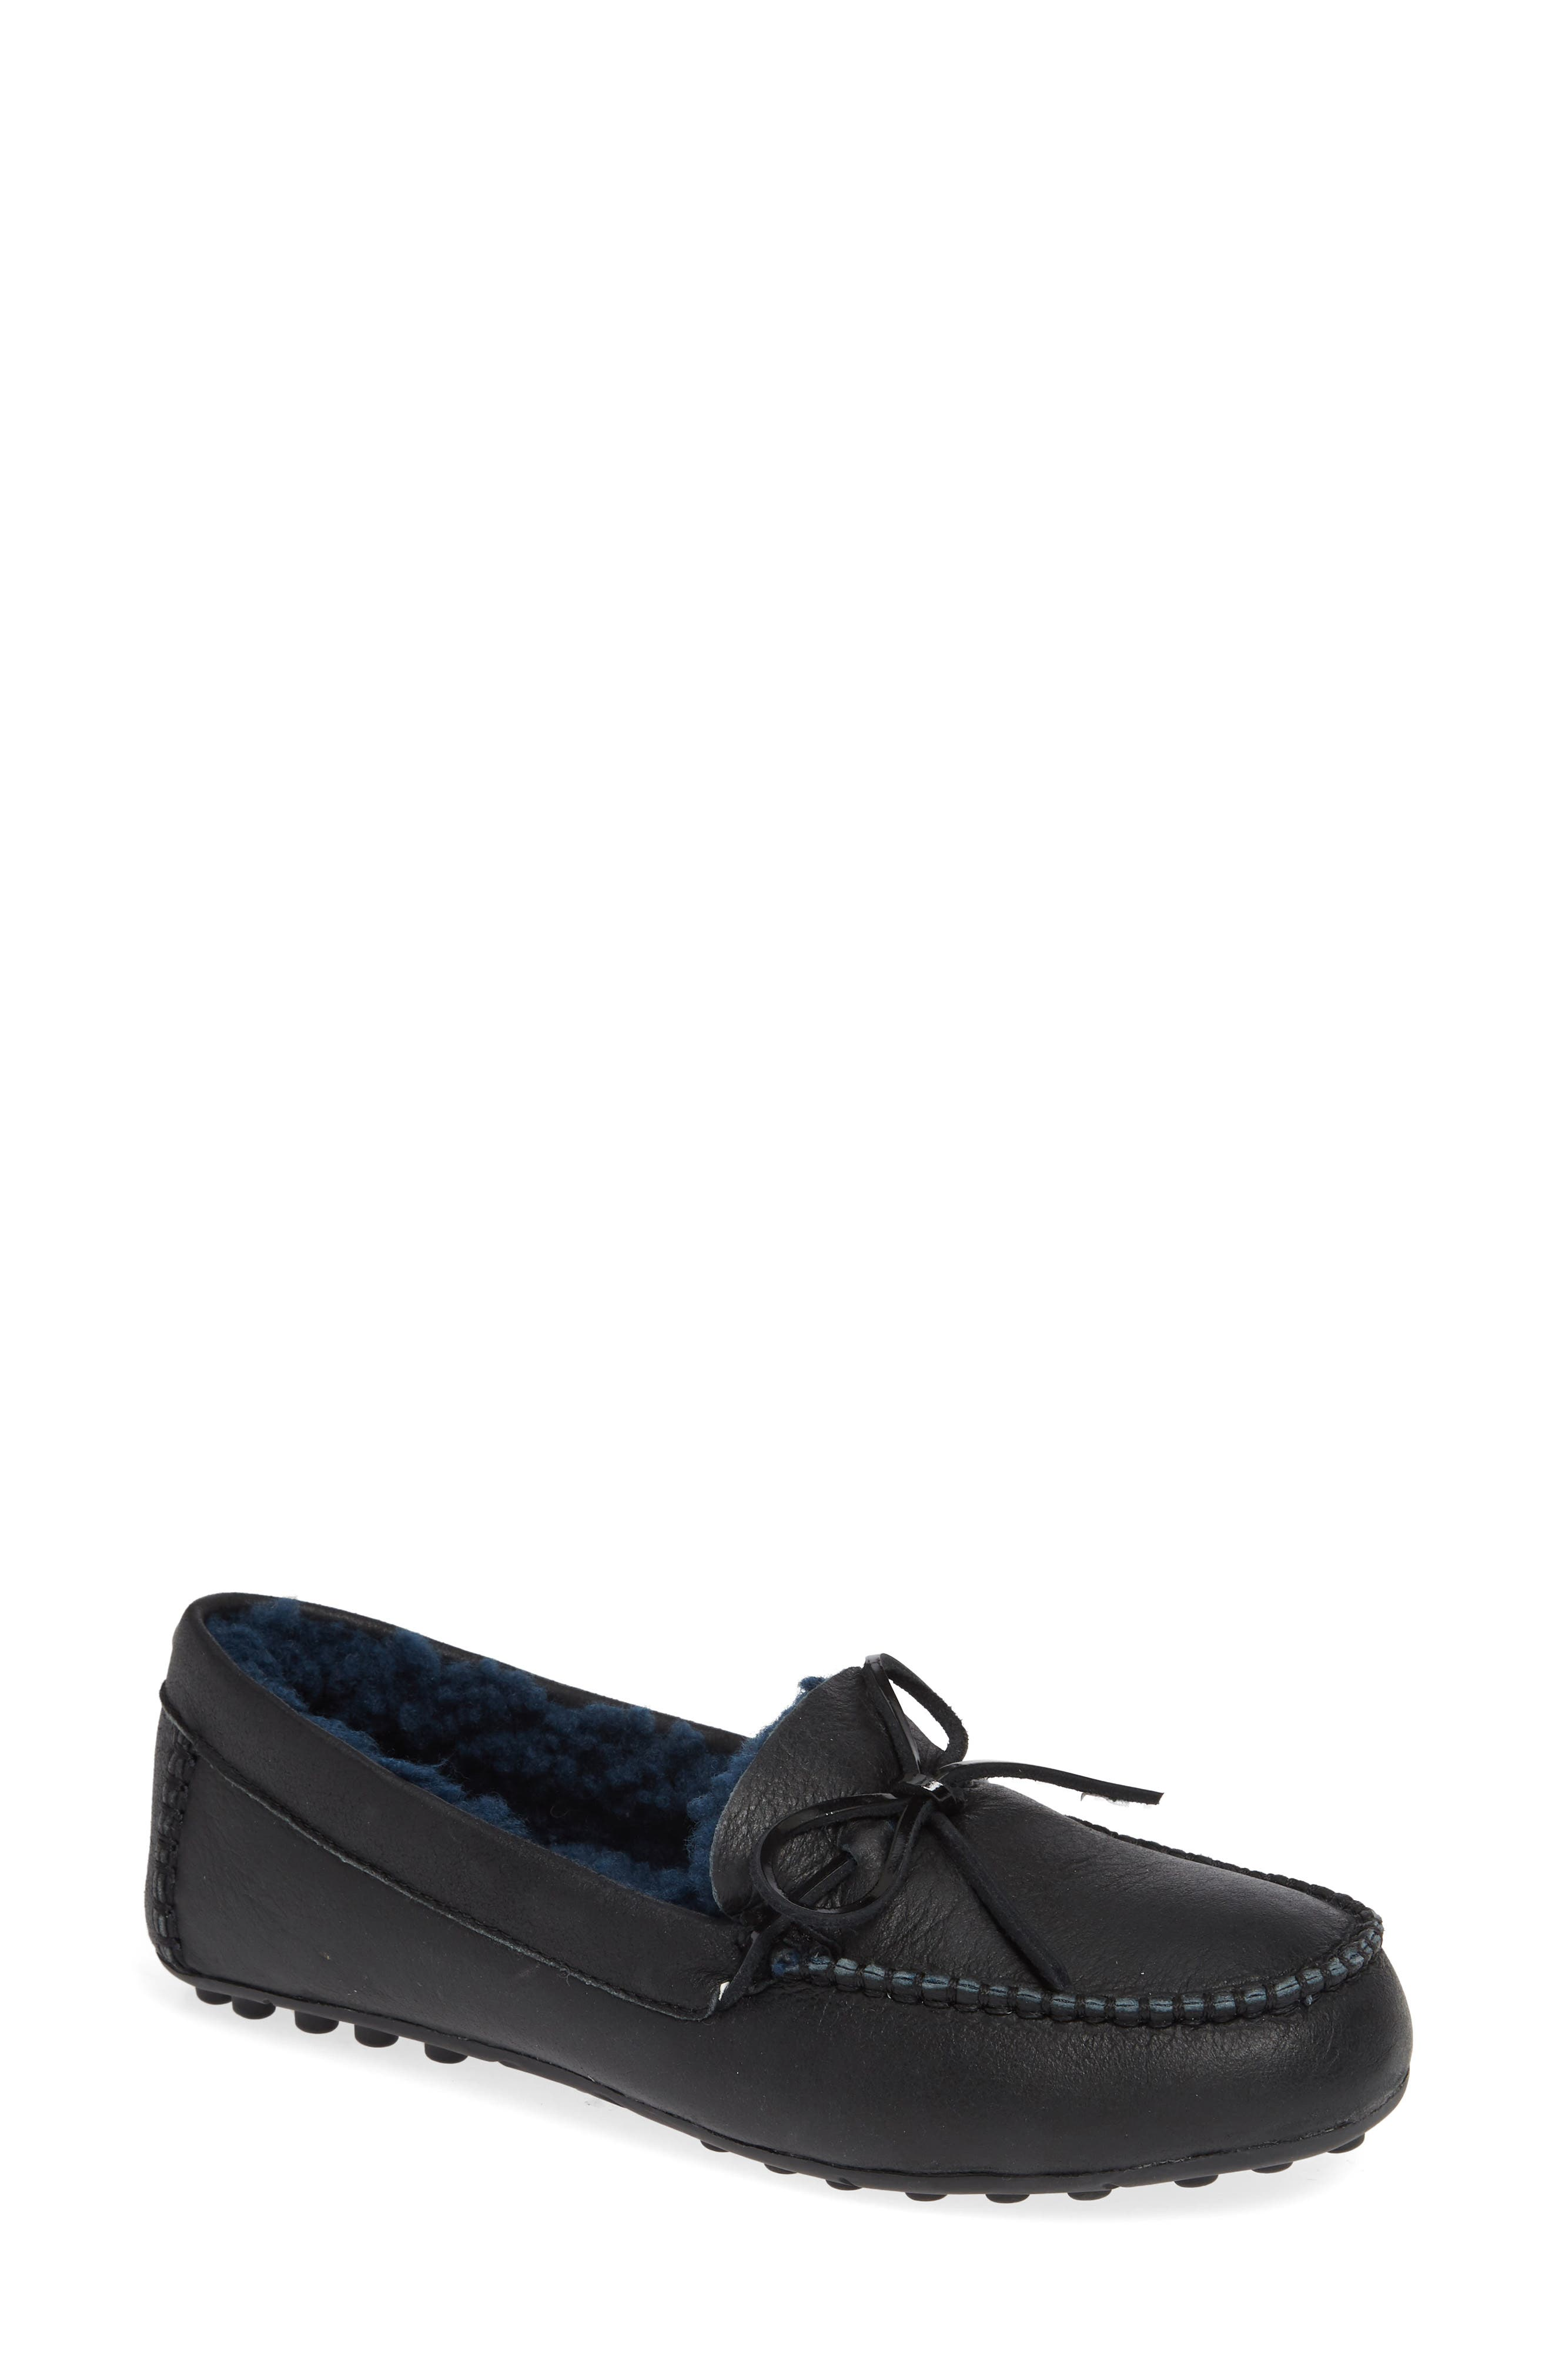 UGG<SUP>®</SUP>, Deluxe Loafer, Main thumbnail 1, color, BLACK LEATHER